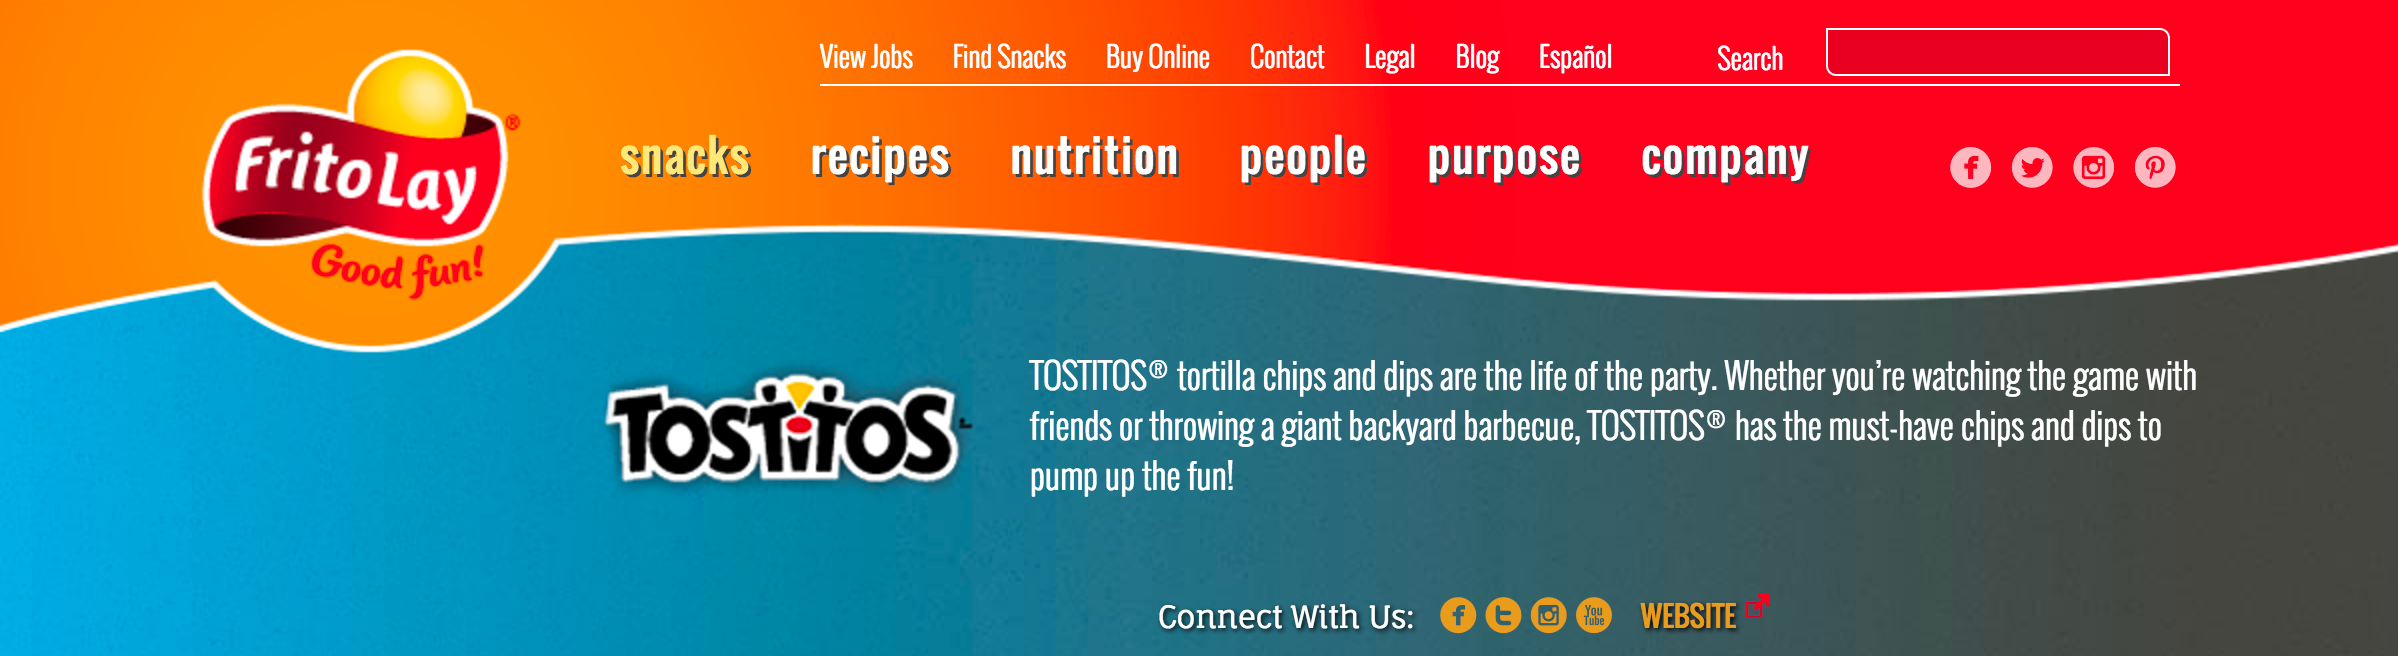 TOSTITOS WEBSITE